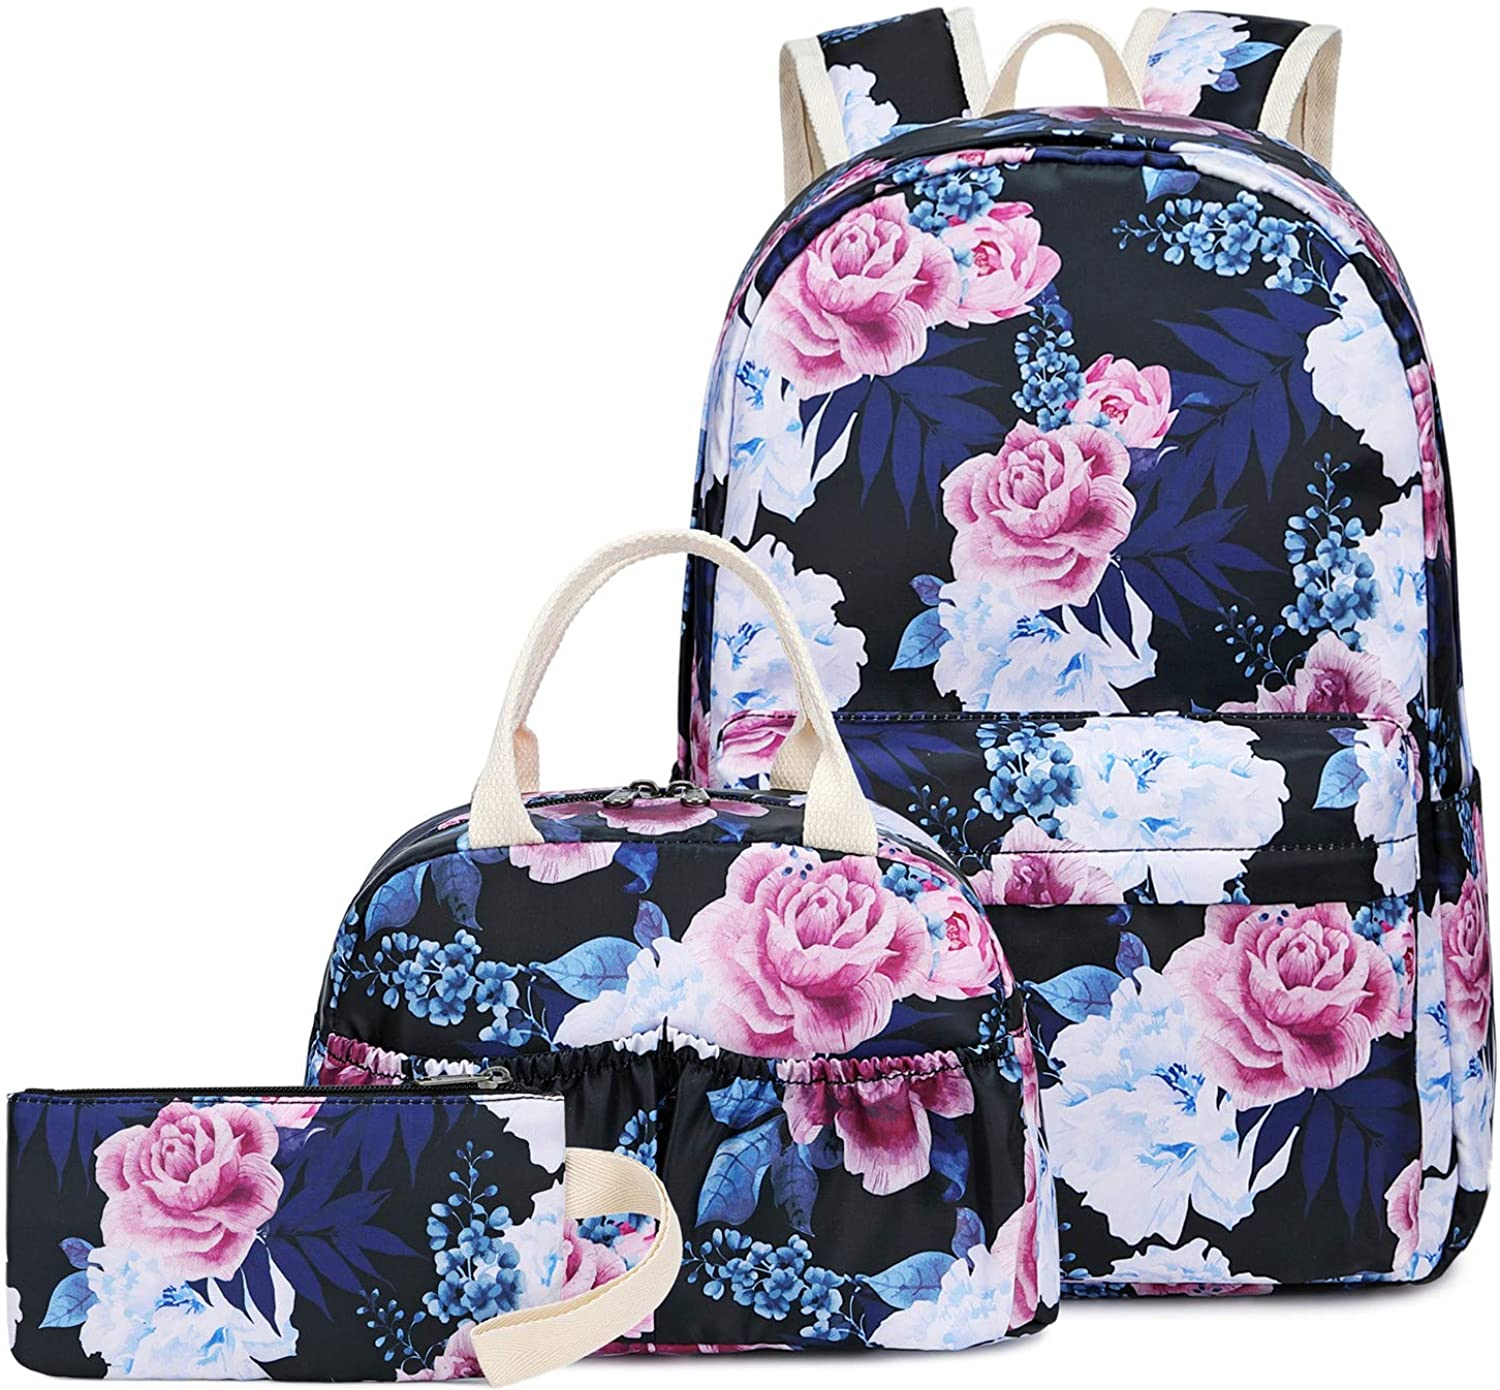 BLUBOON Teens Backpack Set Canvas Girls School Bags, Bookbags 3 in 1